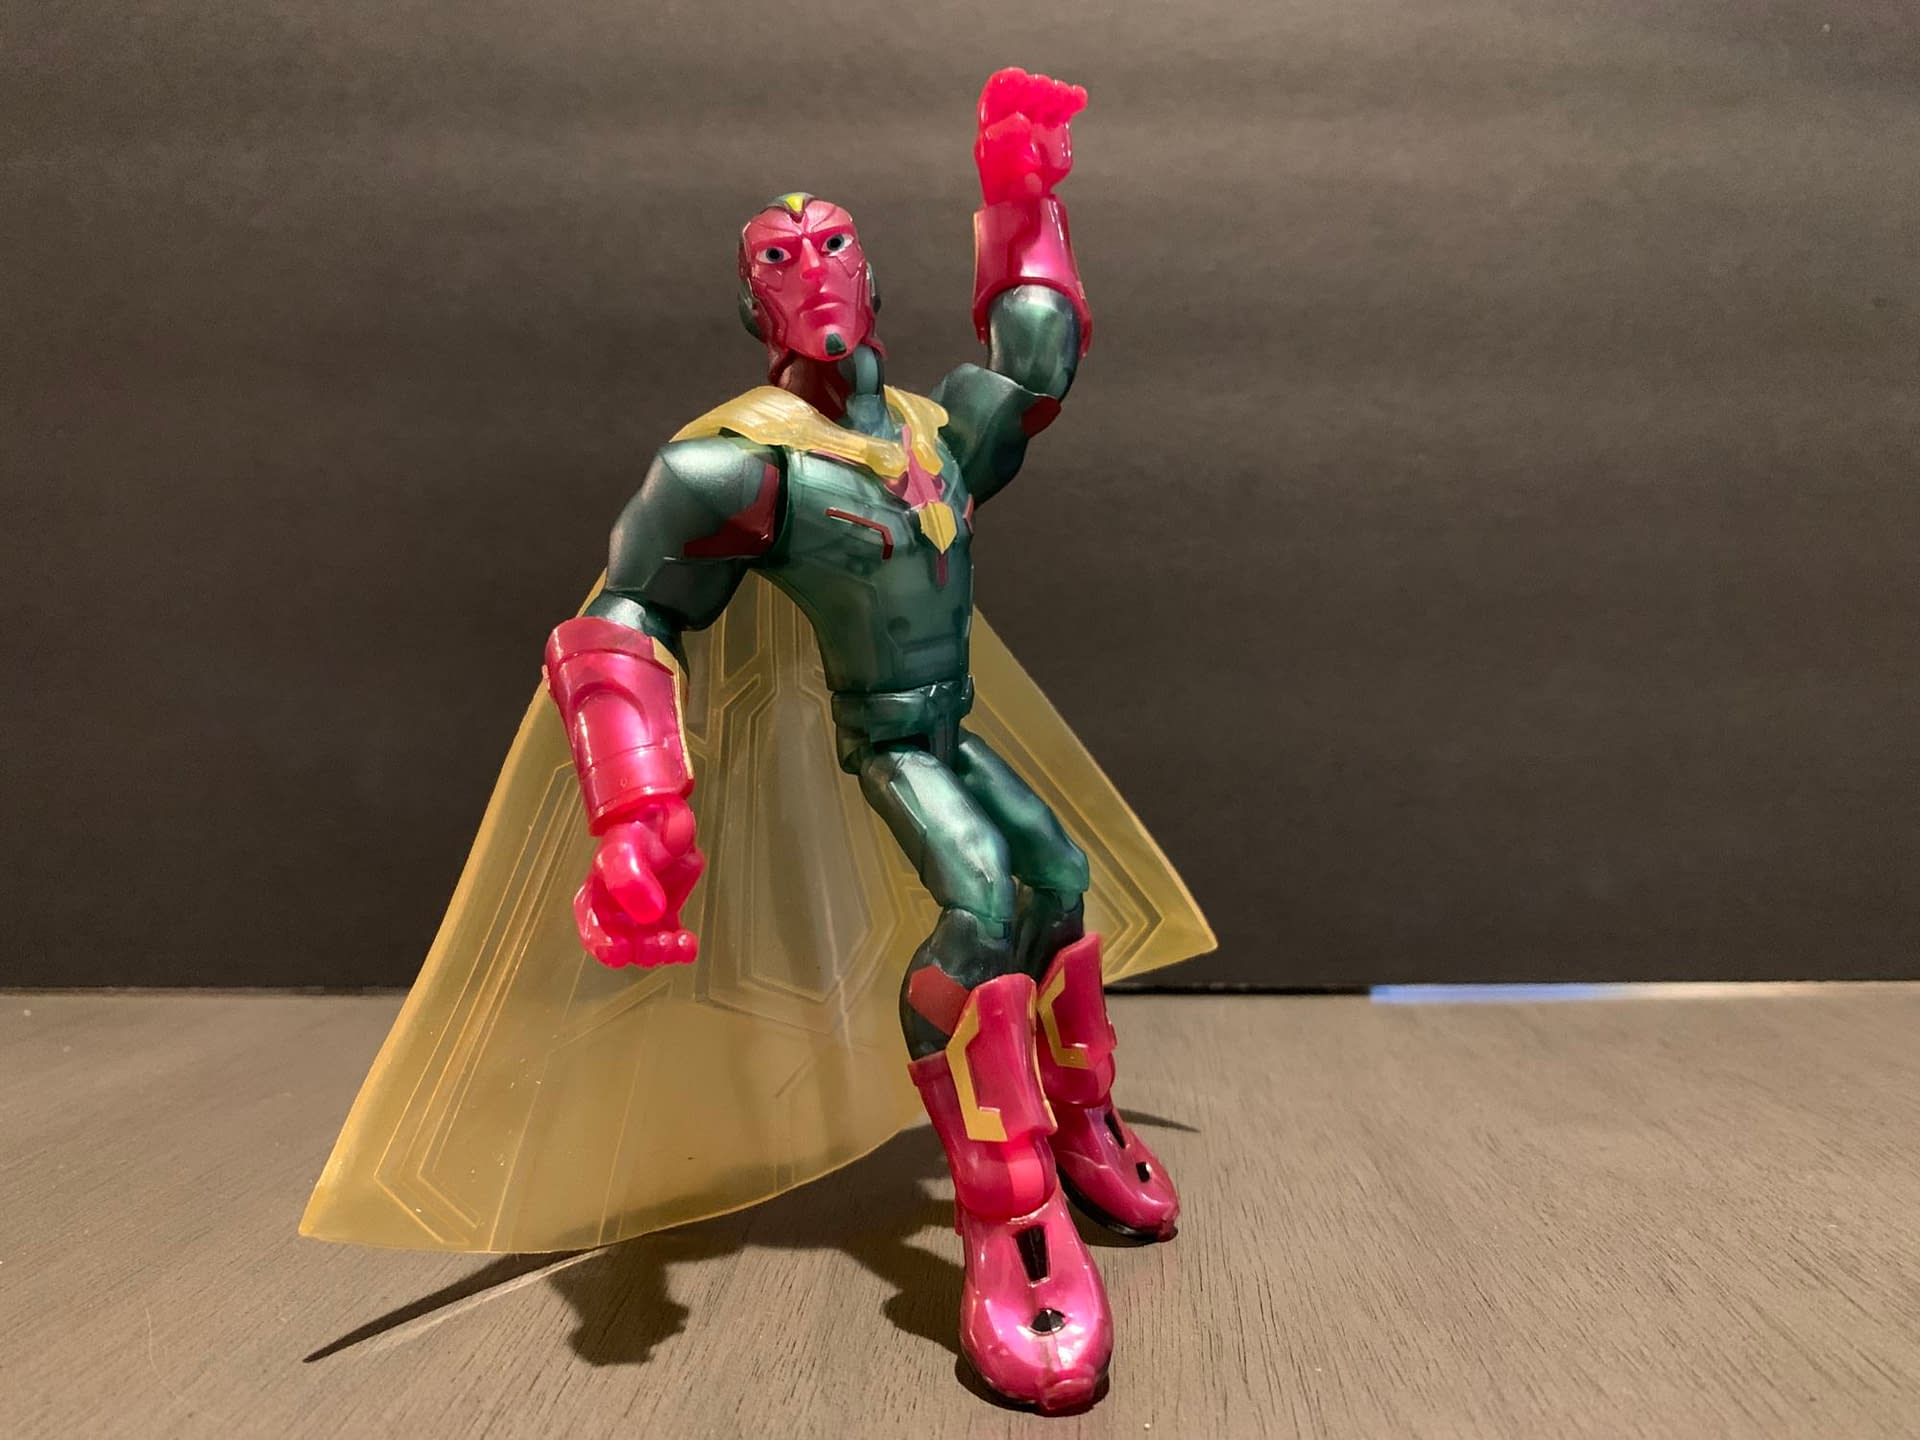 Let's Take A Look AT Disney's Toybox WandaVision Figures